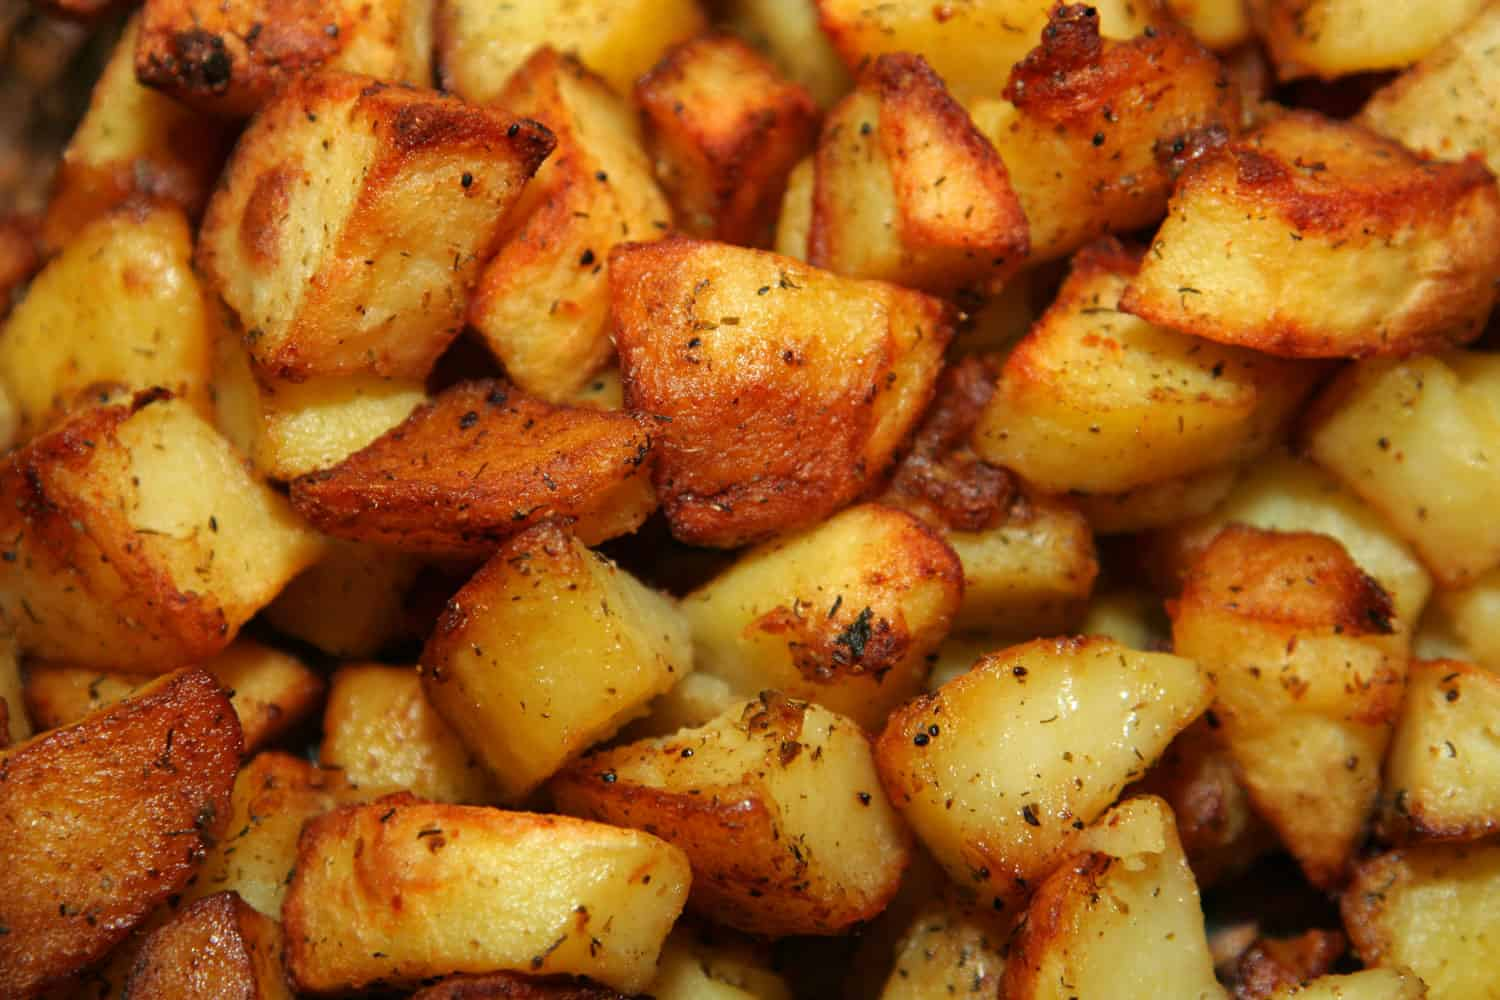 Nicely cut and deep friend potatoes